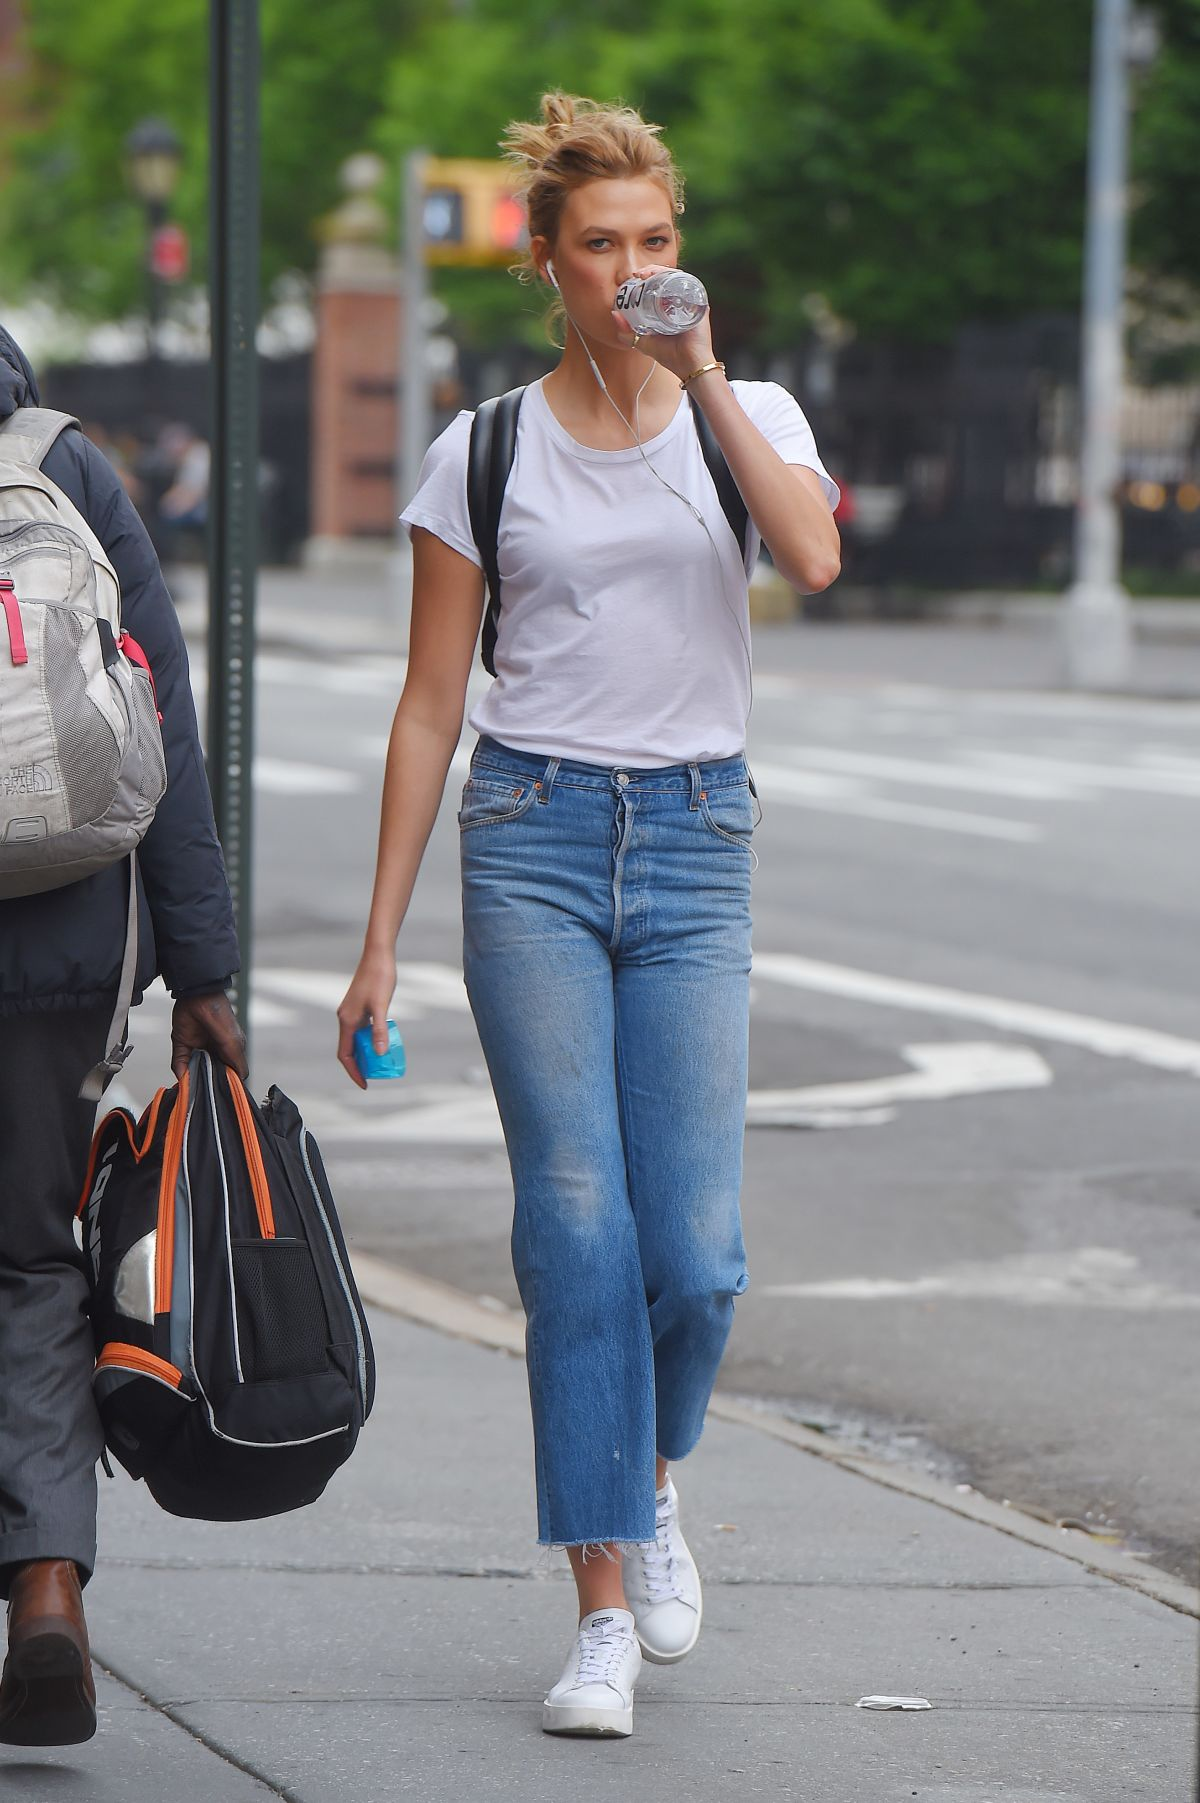 Karlie Kloss Wearing White Tees and Jeans